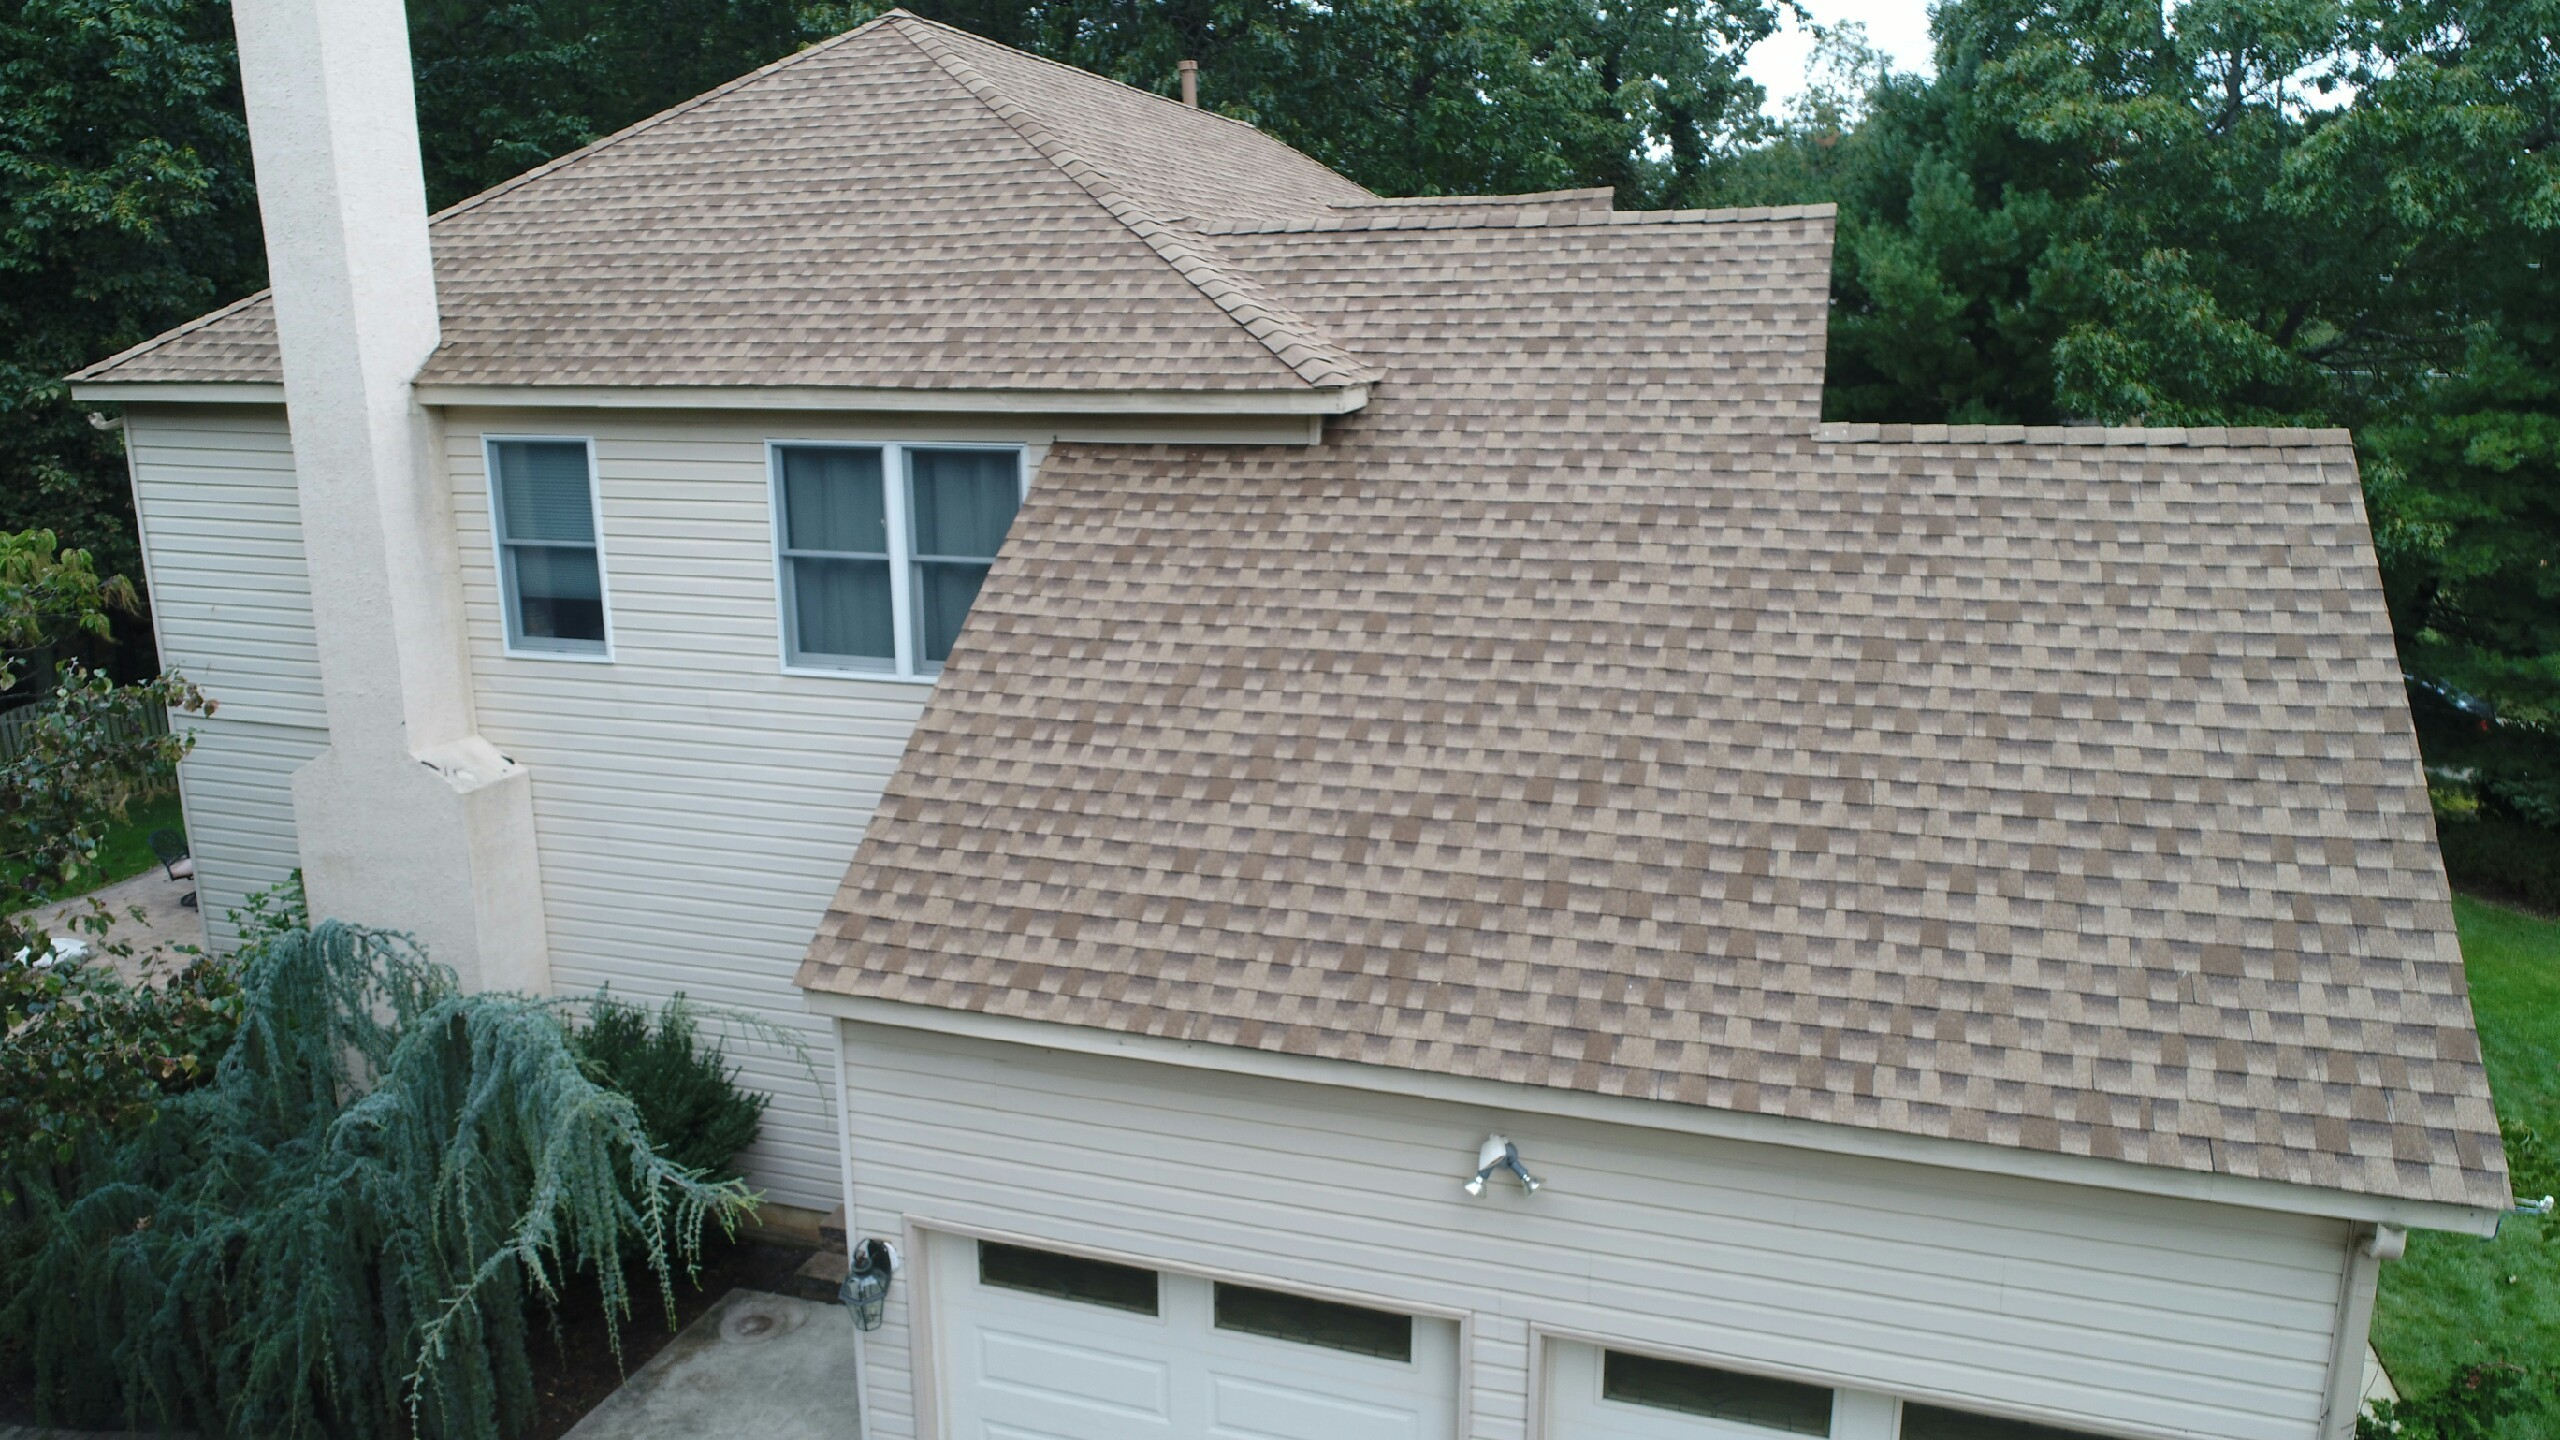 Gaf Timberline Hd Lifetime Roofing System With Shakewood